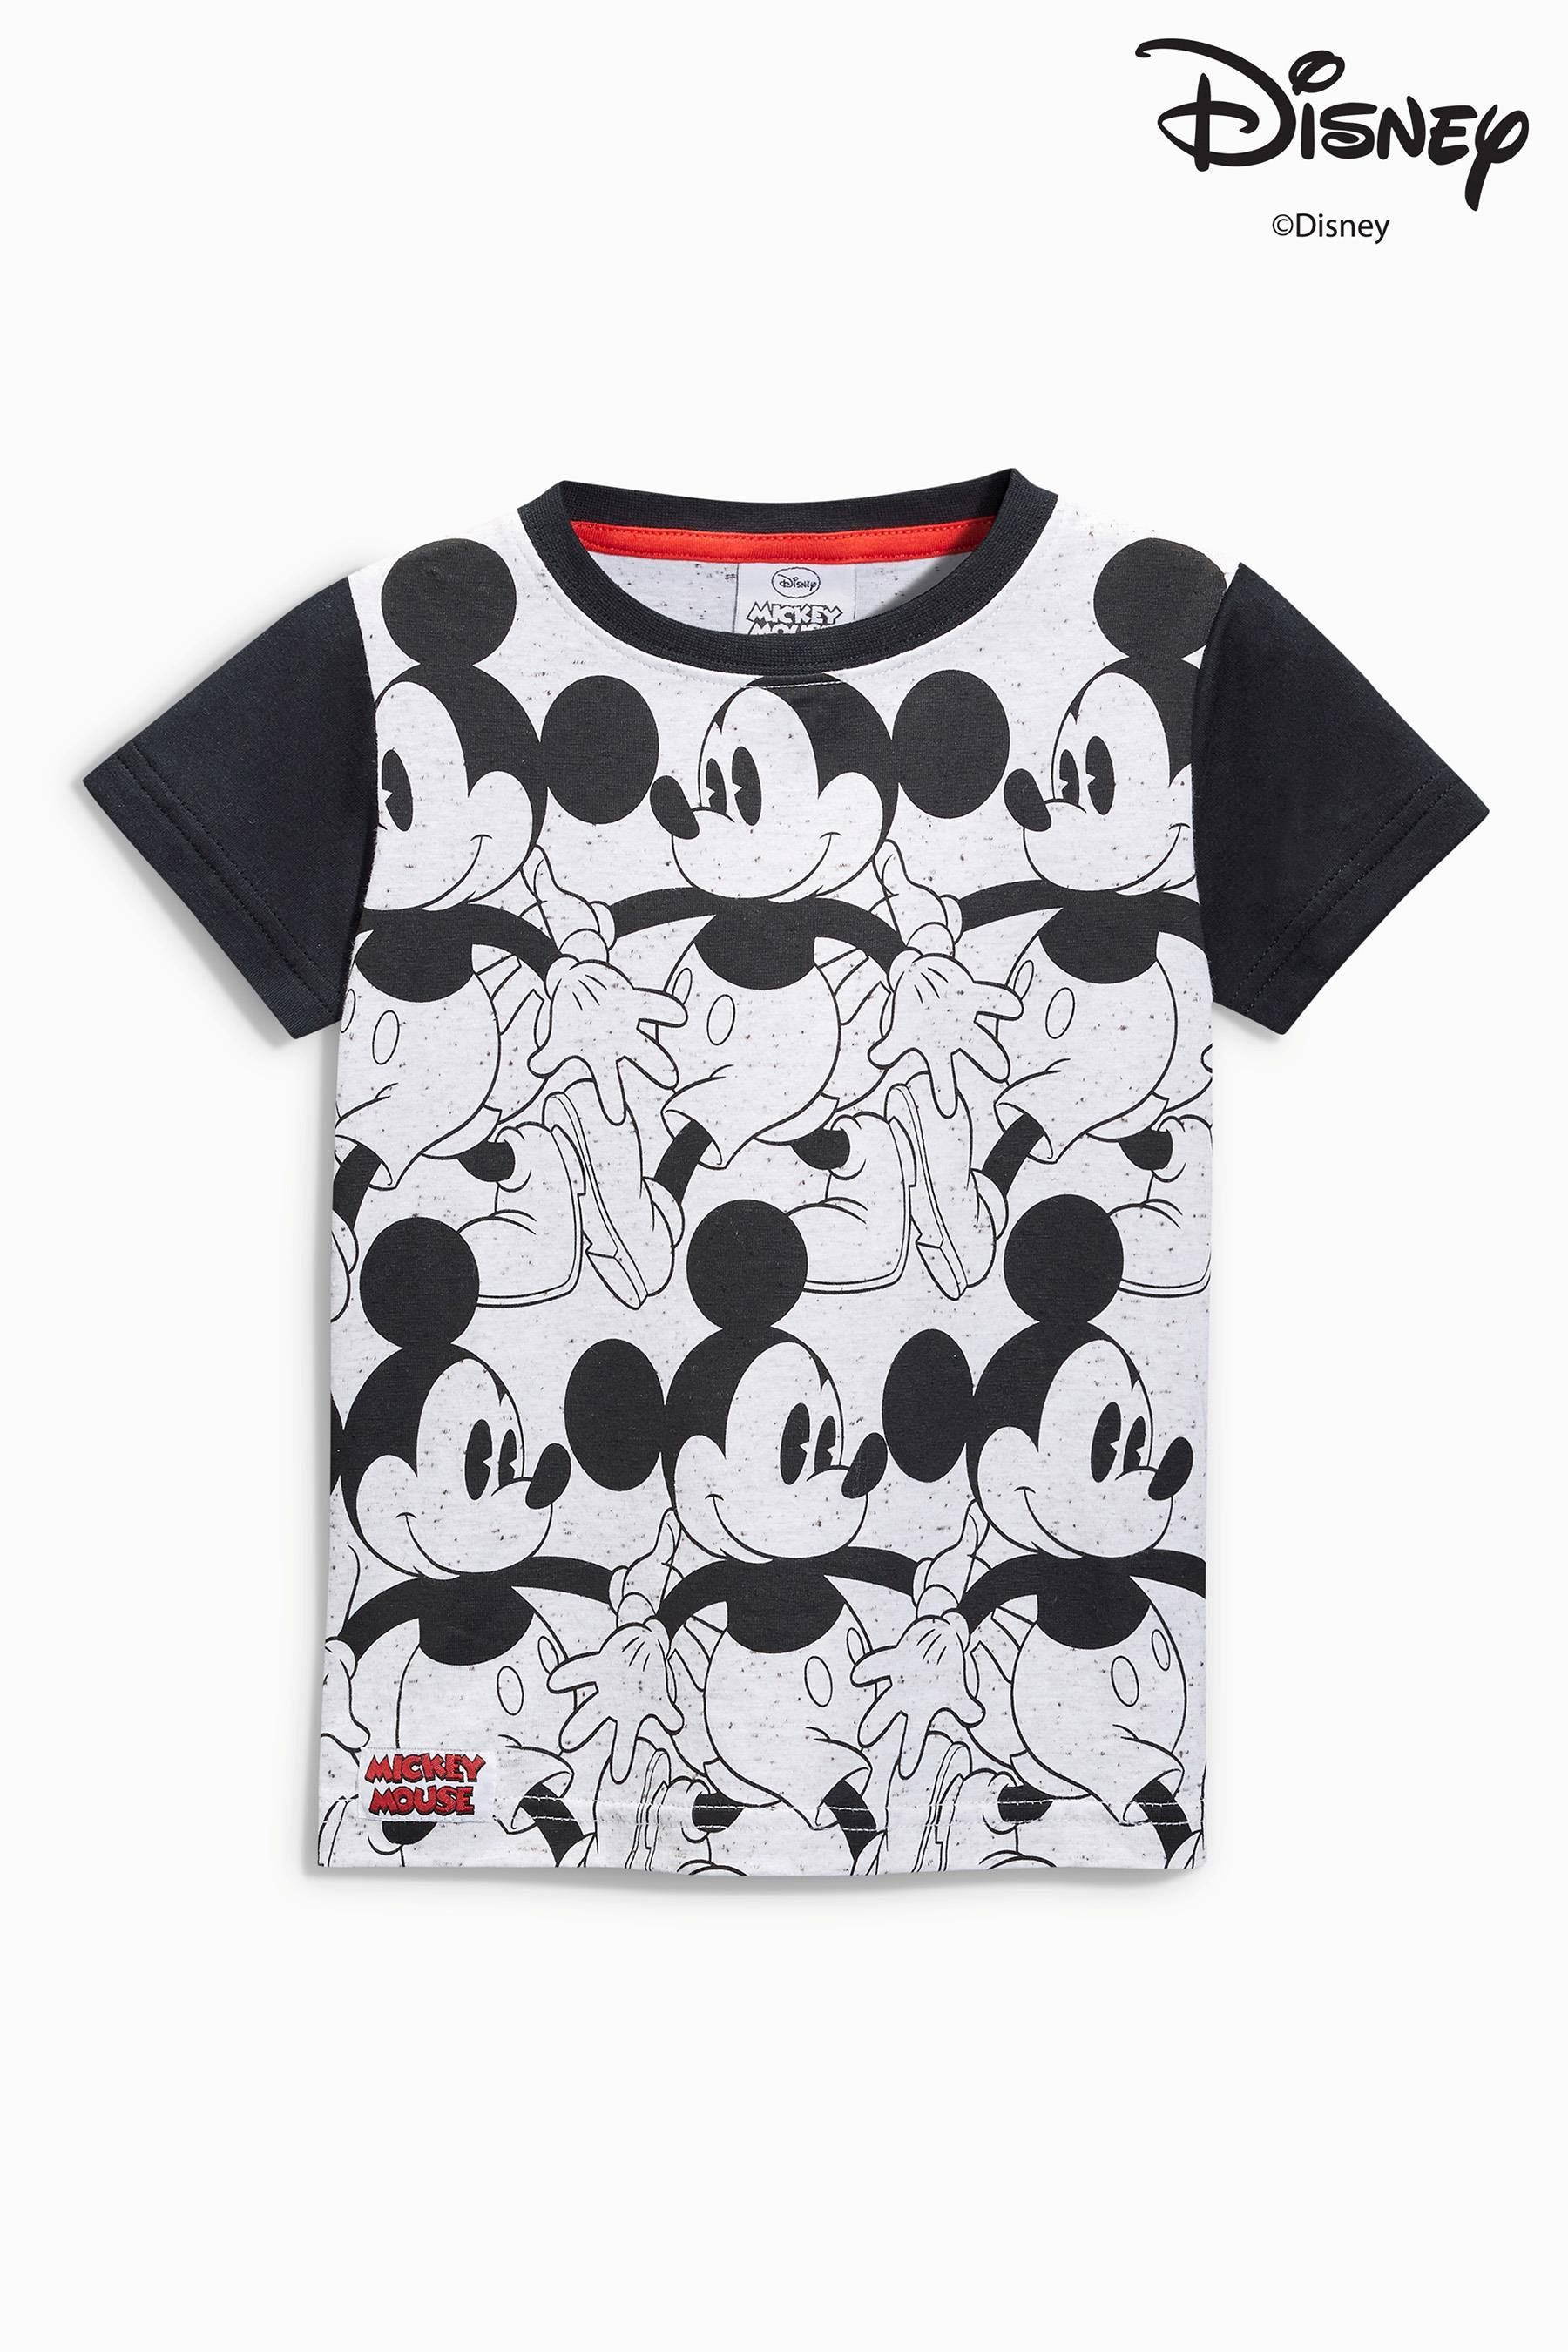 Design t shirt online uk - Buy Monochrome Mickey Mouse All Over Print T Shirt From The Next Uk Online Shop